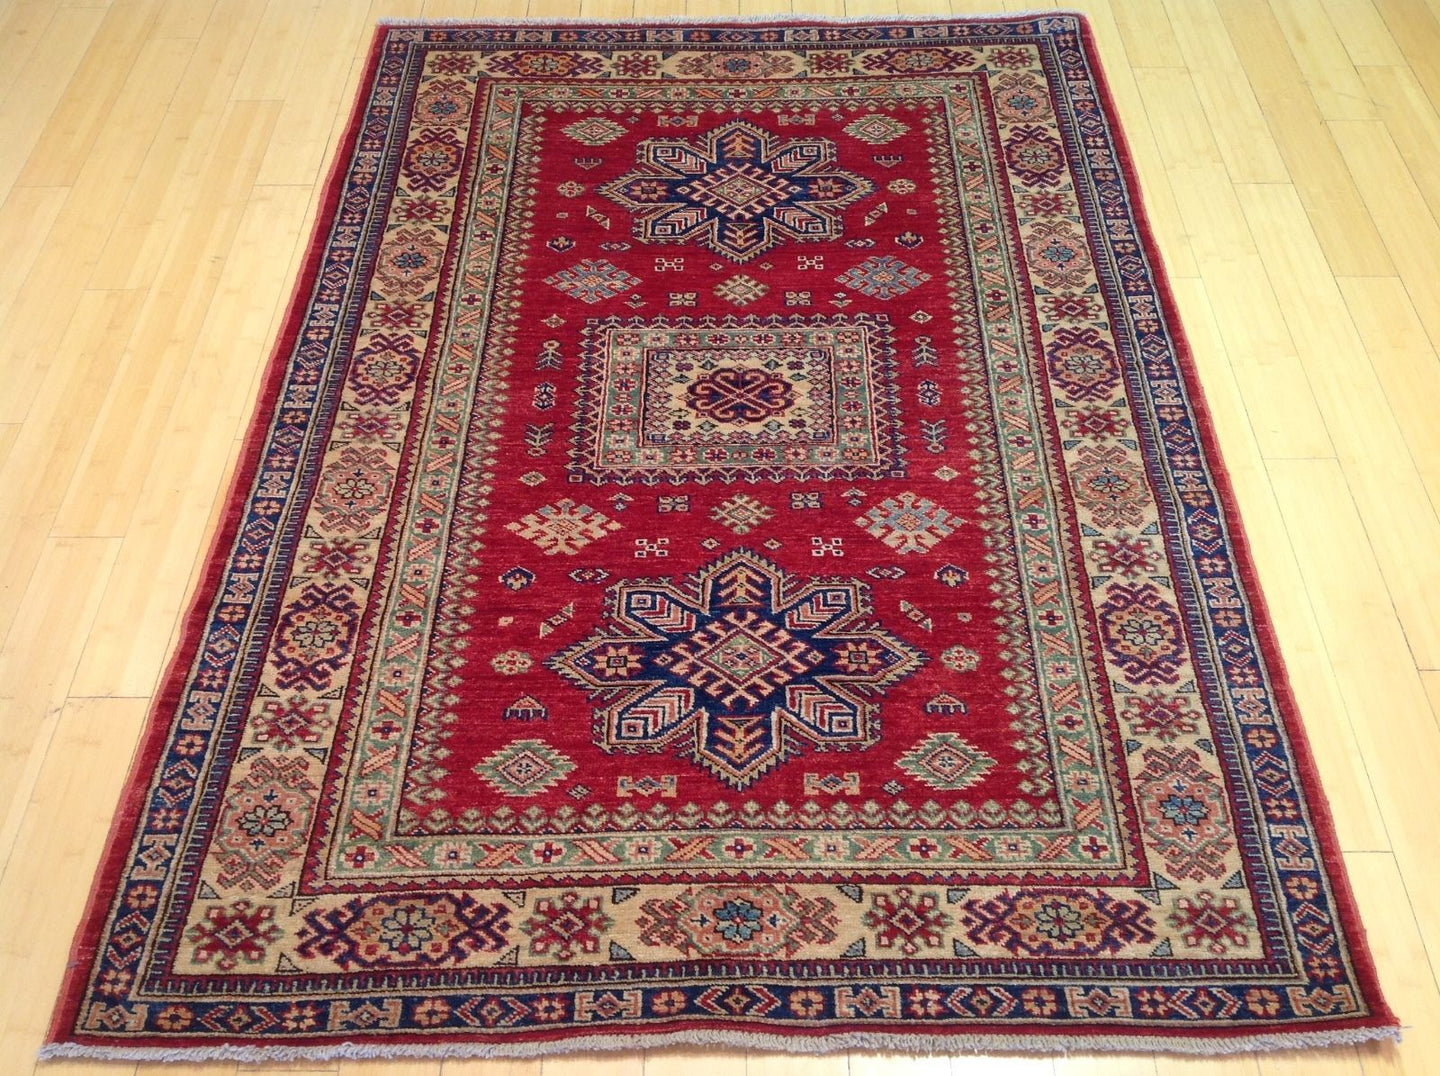 Fine Oriental Super Kazak Tribal Design Splendid Handknotted Real Wool Unique Rug